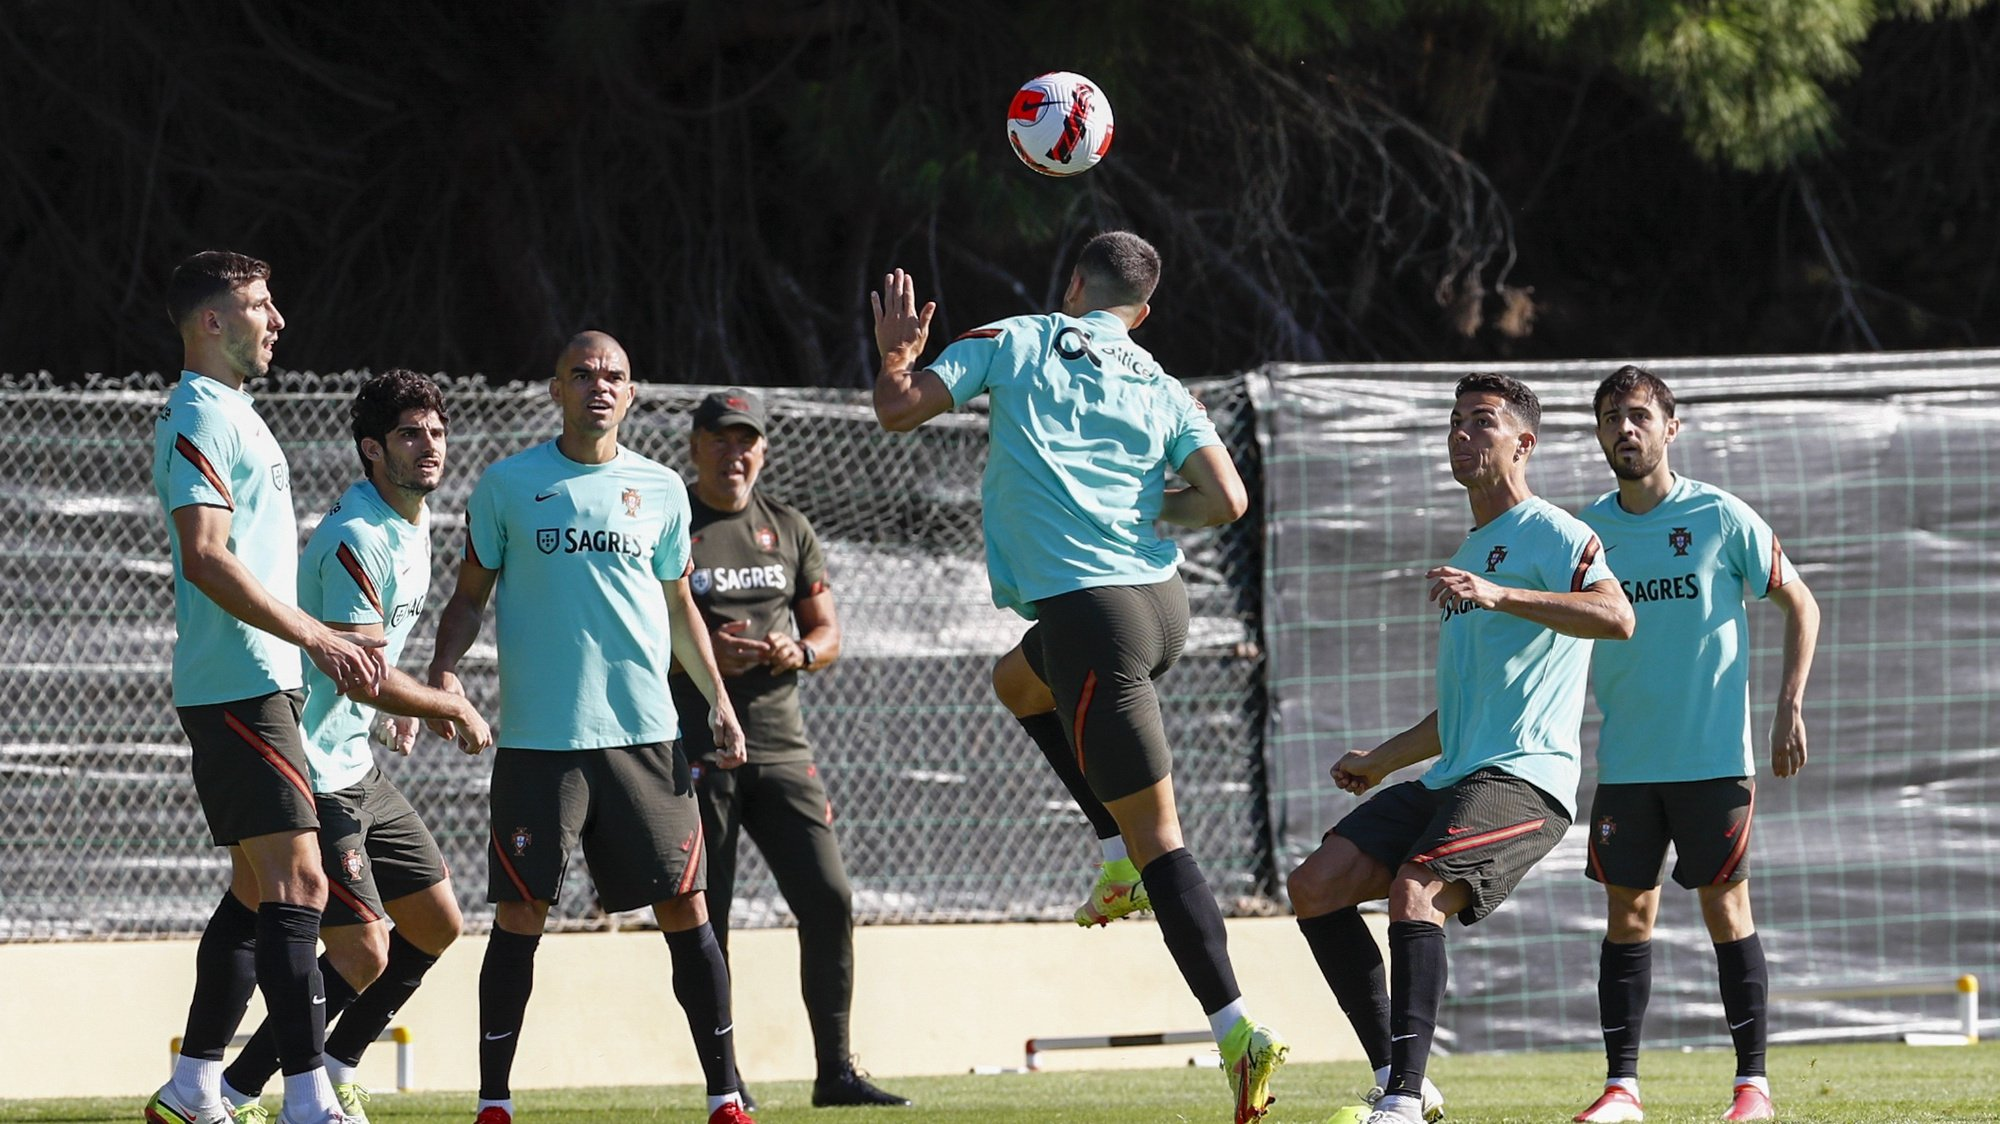 Portuguese national soccer players (L - R) Ruben Dias, Pepe, Cristiano Ronaldo and Bernardo Silva during the training session in Almancil, Faro, South of Portugal, 10 October 2021. Portugal will face Luxembourg in the FIFA World Cup Qatar 2022 qualifying group A soccer match next 12 October in Faro. ANTONIO COTRIM/LUSA